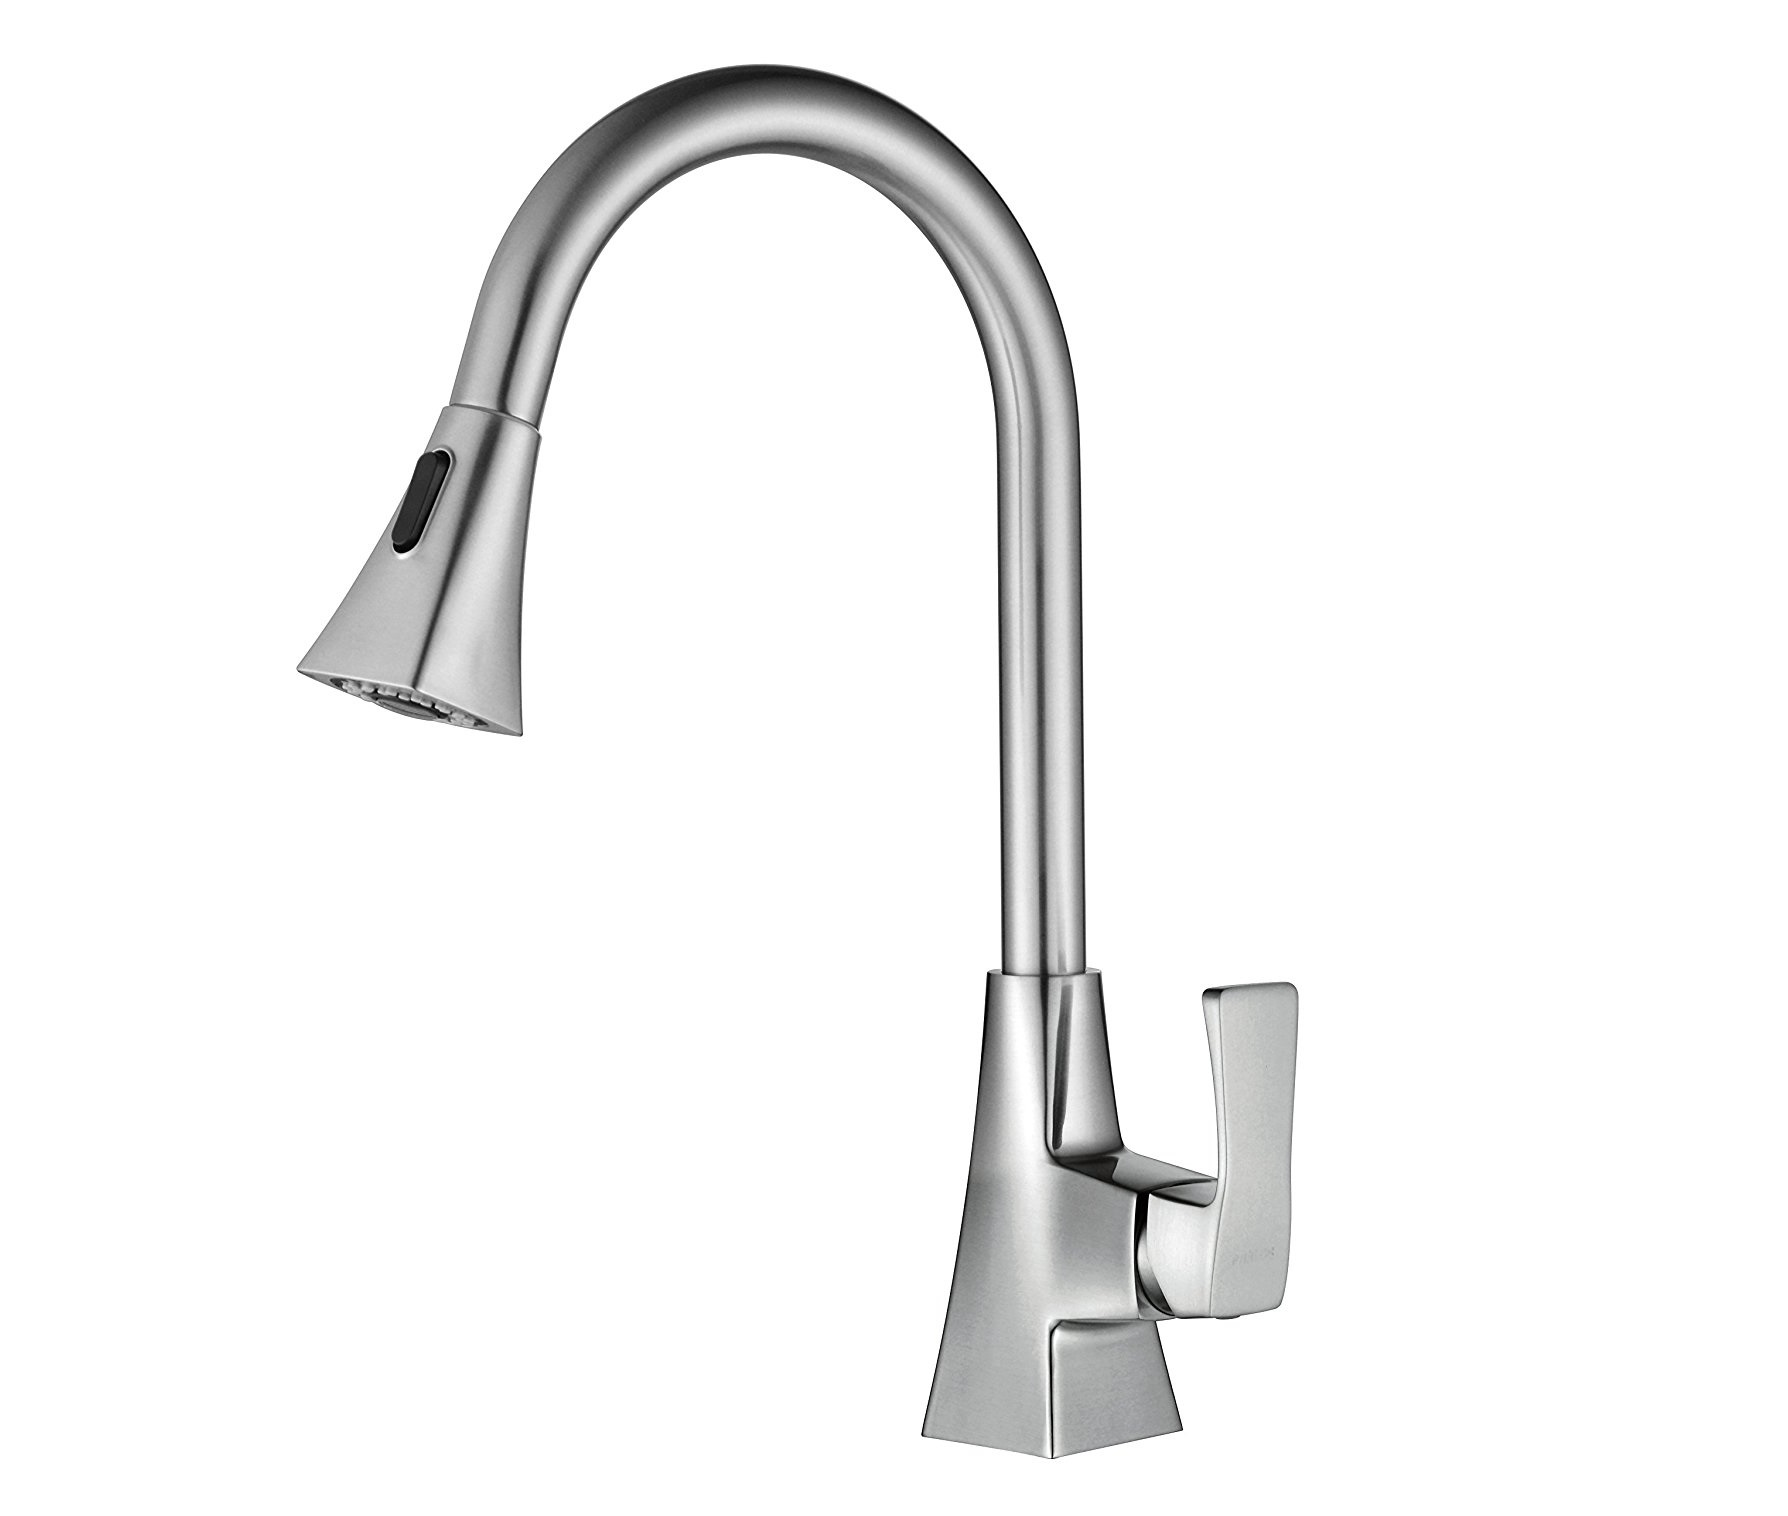 top 10 best single handle kitchen faucets in 2020 - paramatan